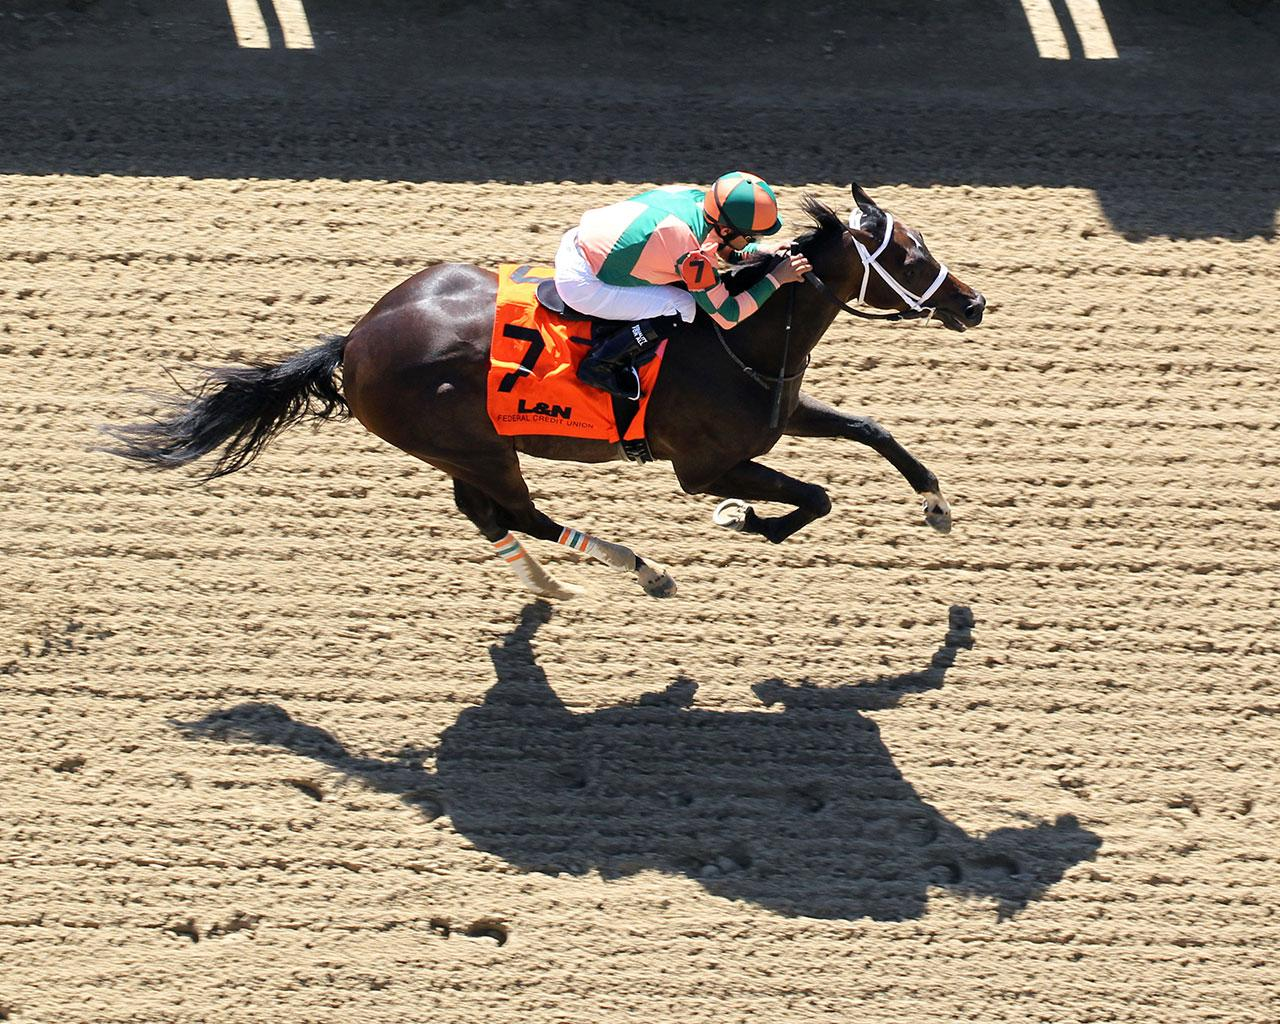 KADRI---Funny-Cide---09-05-20---R02---CD---Aerial-Finish-01